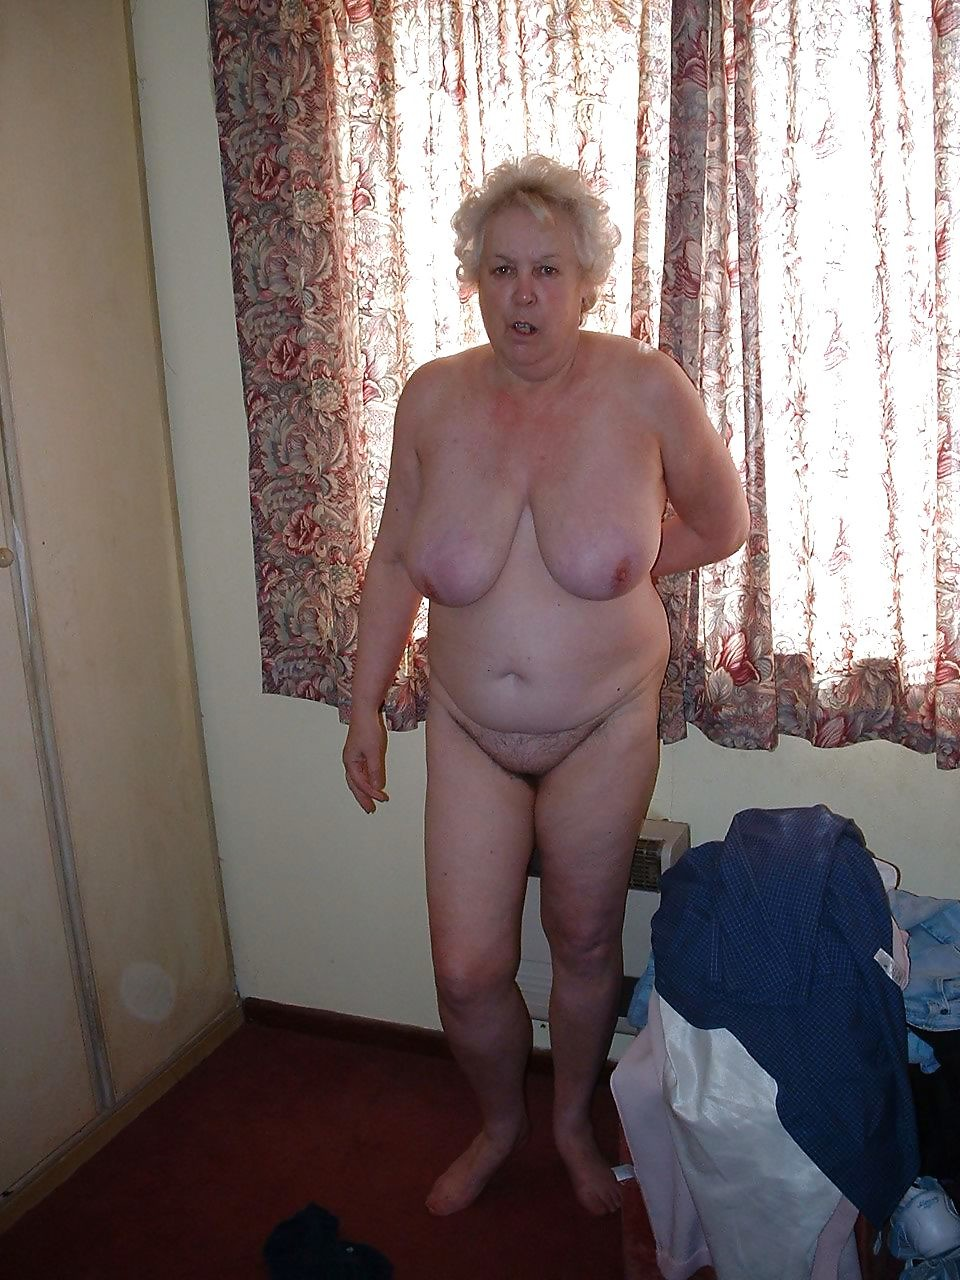 Old granny full frontal porn, good pictures of a girls pussy